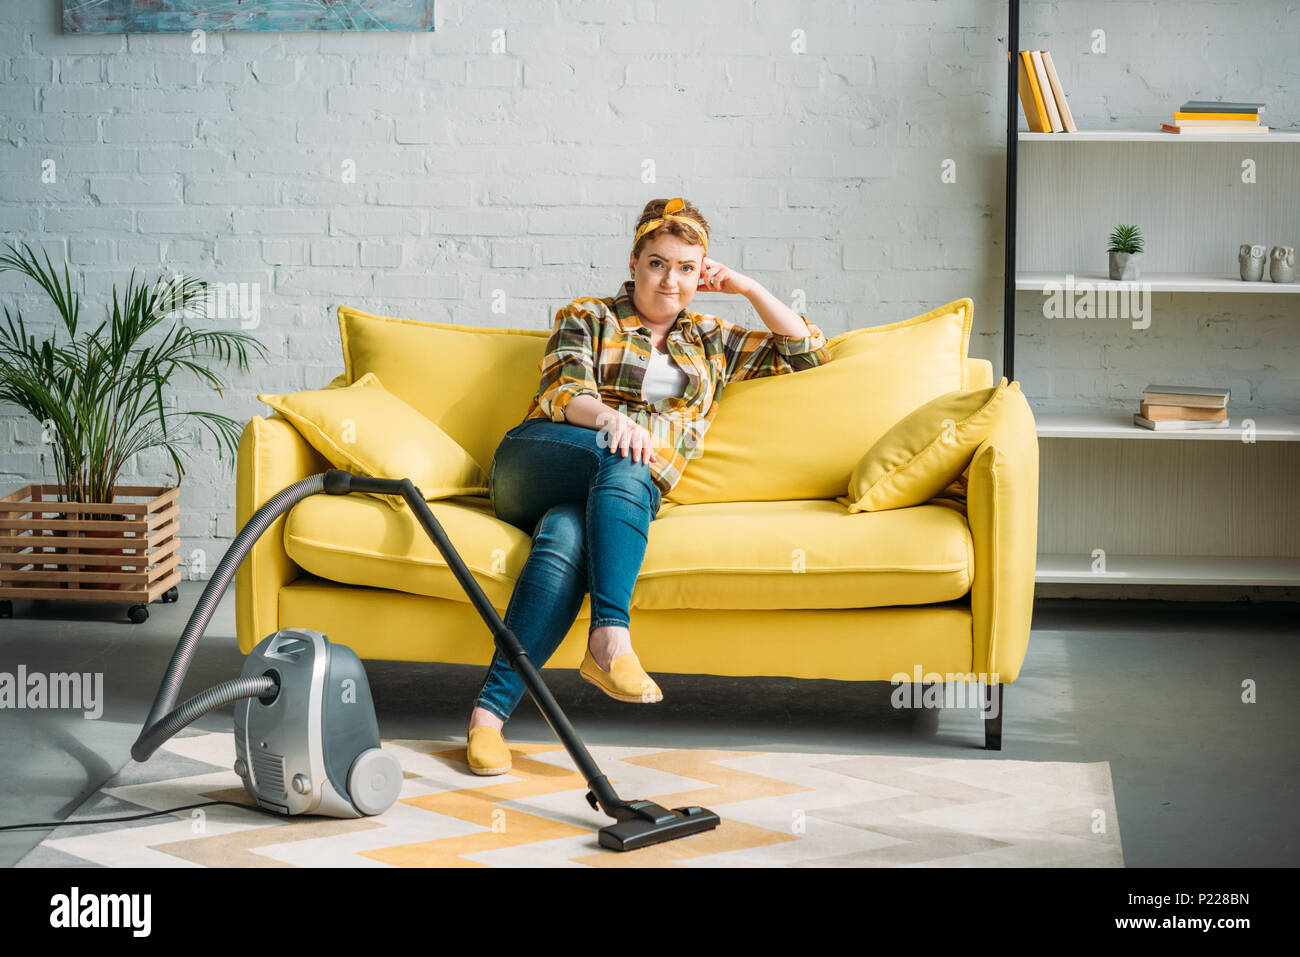 grimacing woman sitting on sofa and looking at camera, vacuum cleaner on floor at home - Stock Image